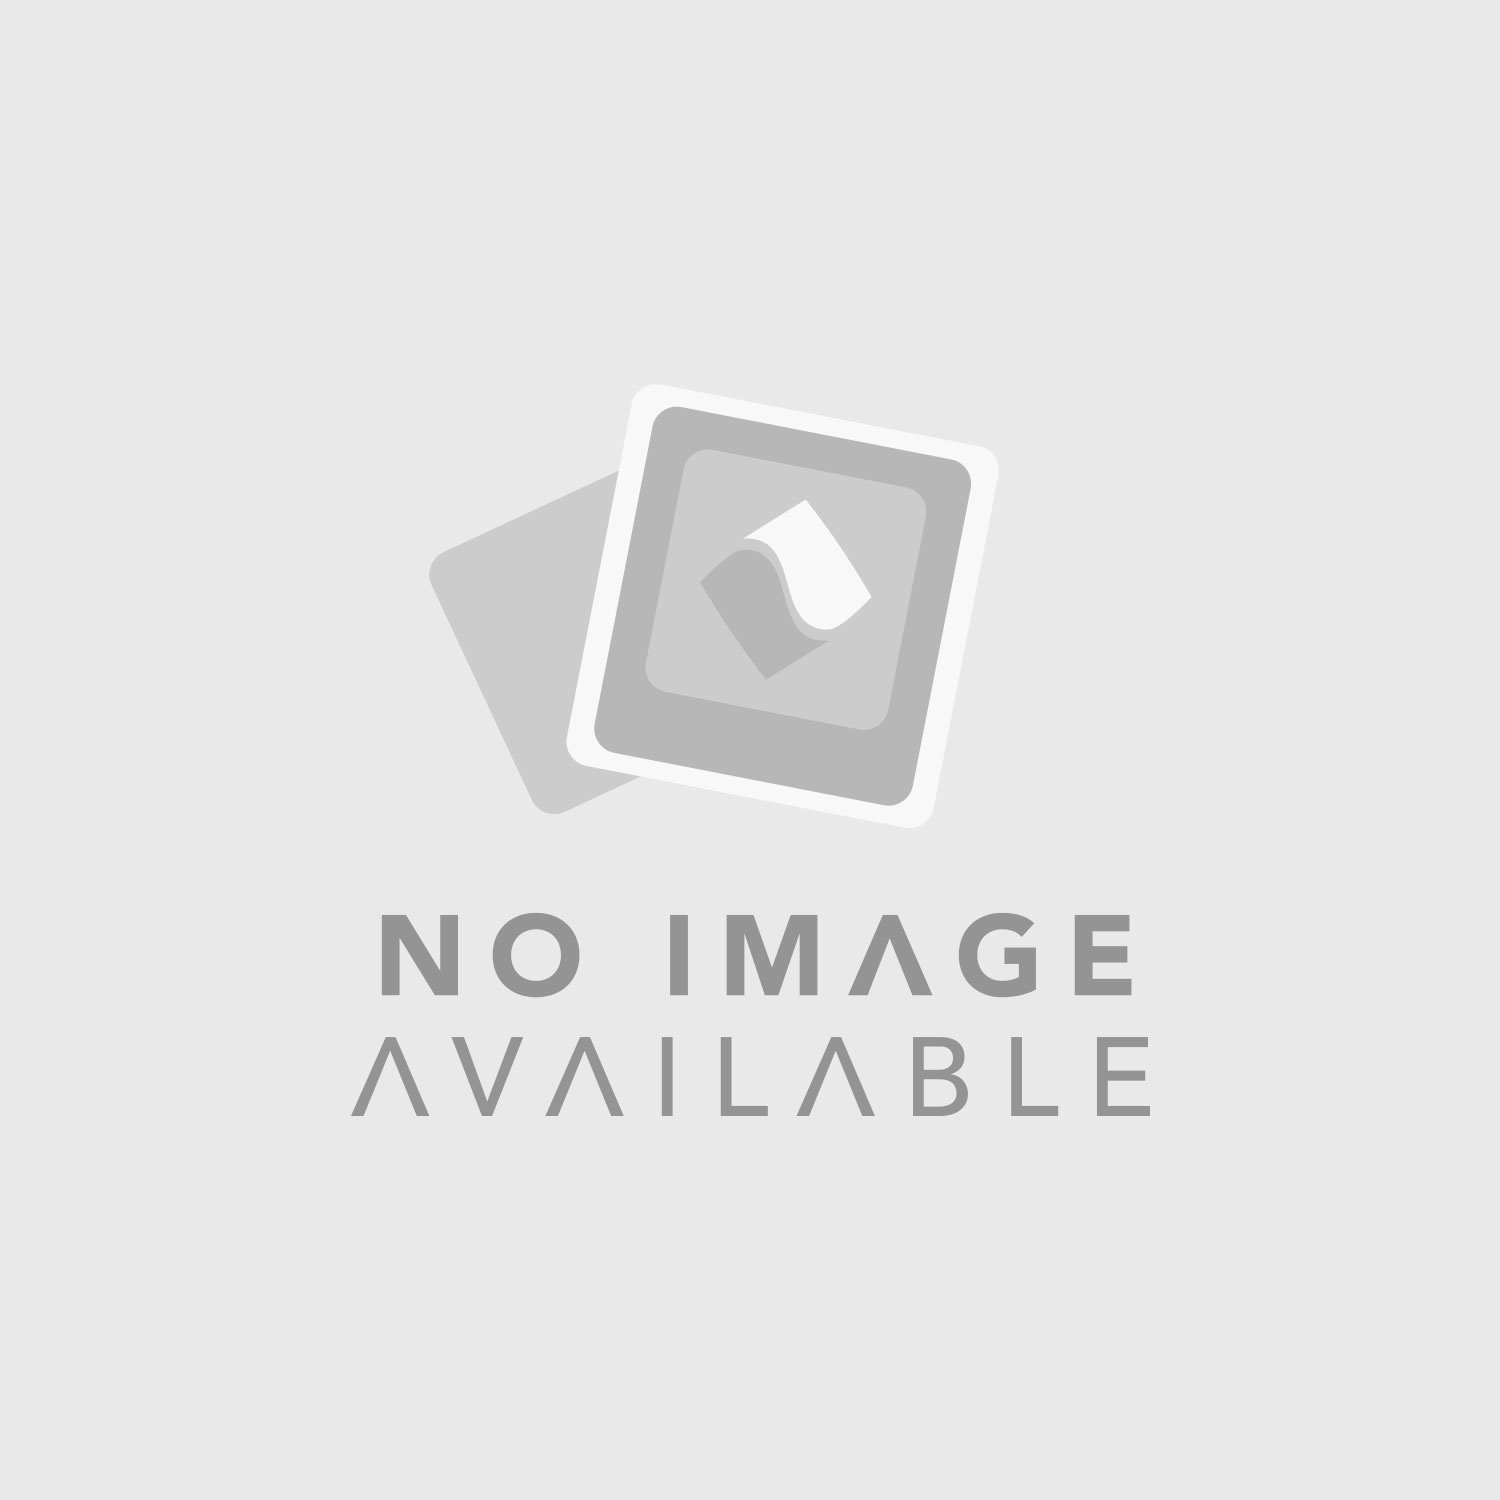 Allen & Heath MixWizard4 14:4:2 Professional Mixing Console